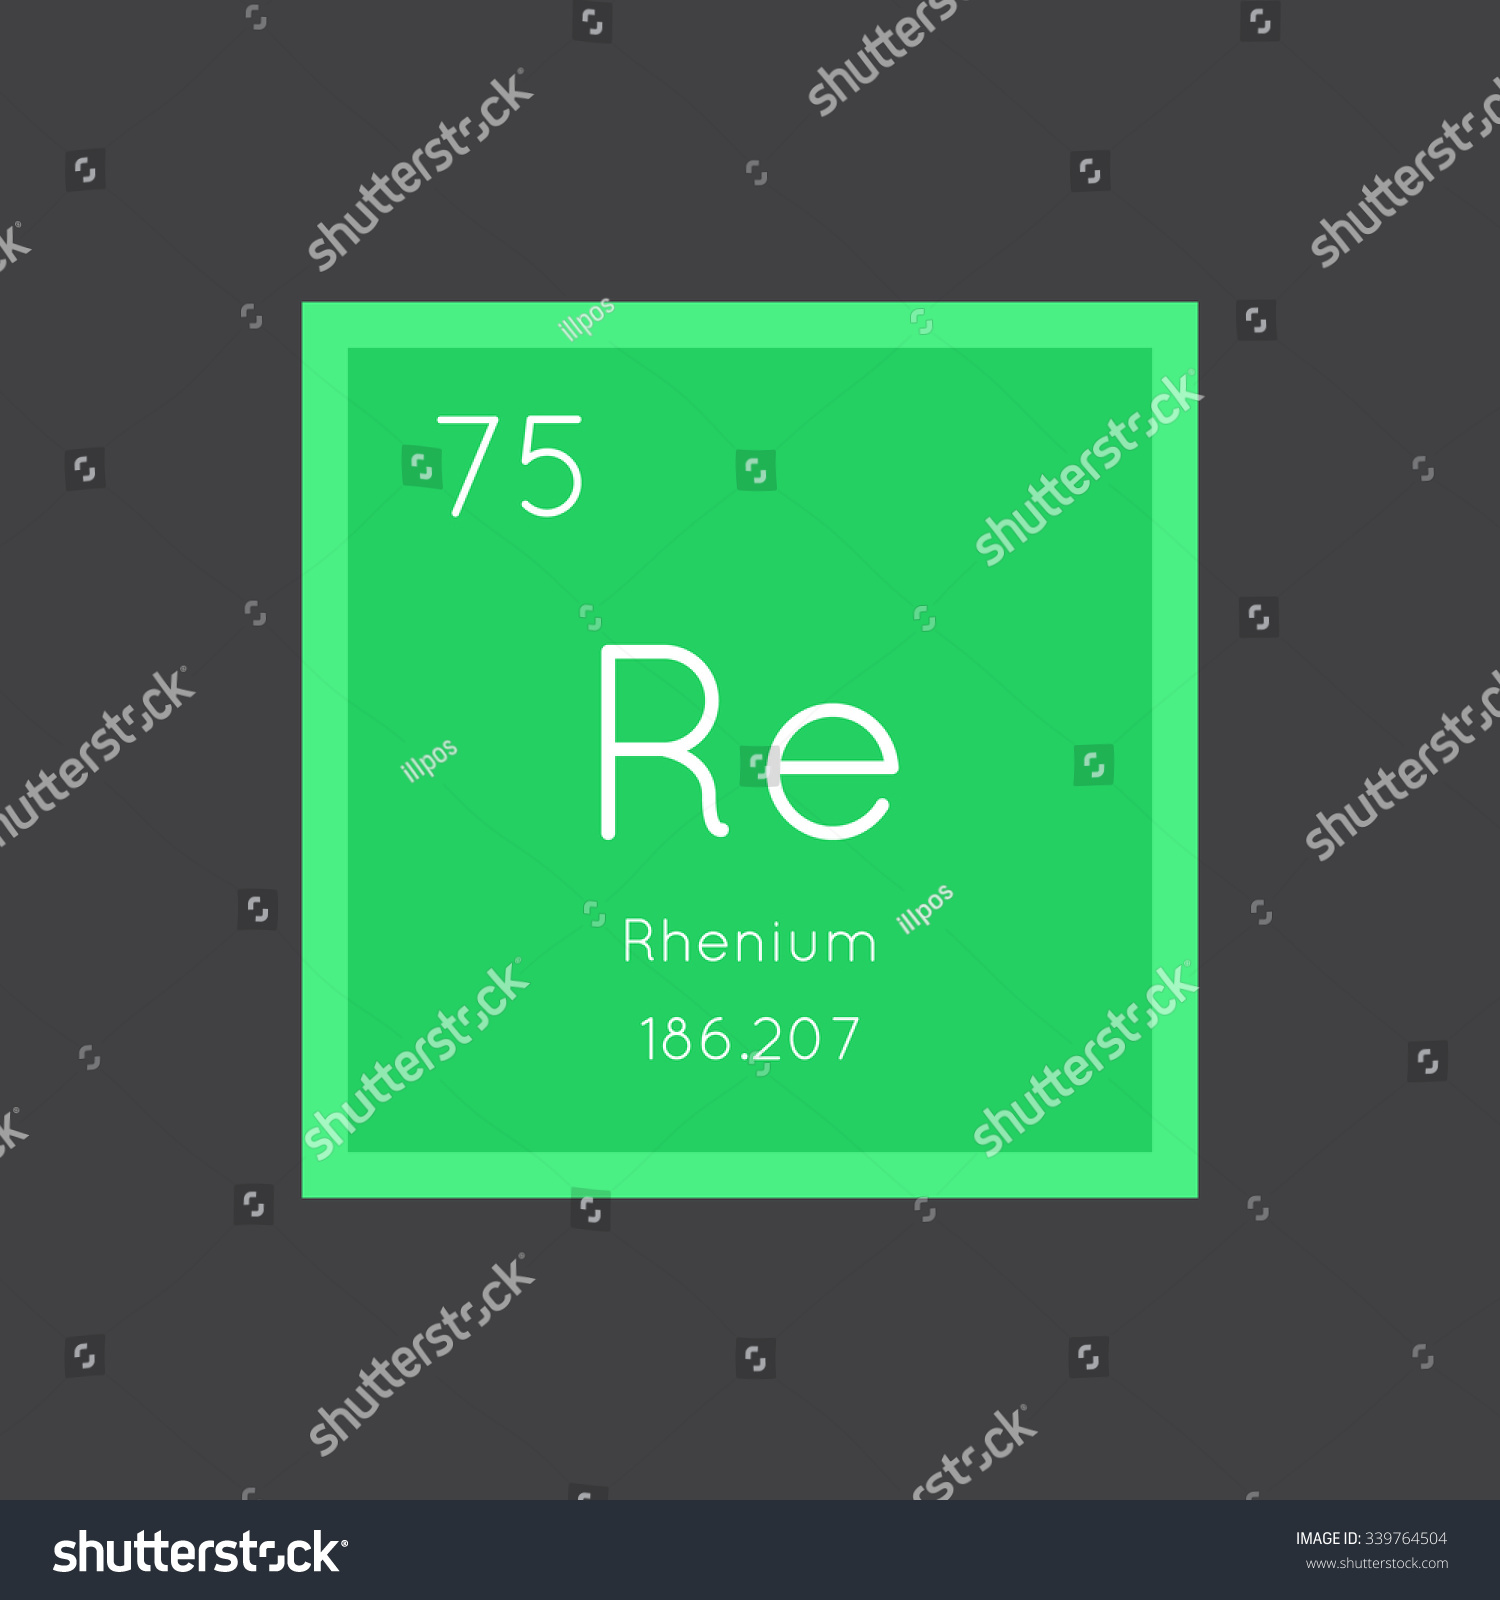 hight resolution of rhenium simple style tile icon chemical element of periodic table vector illustration eps8